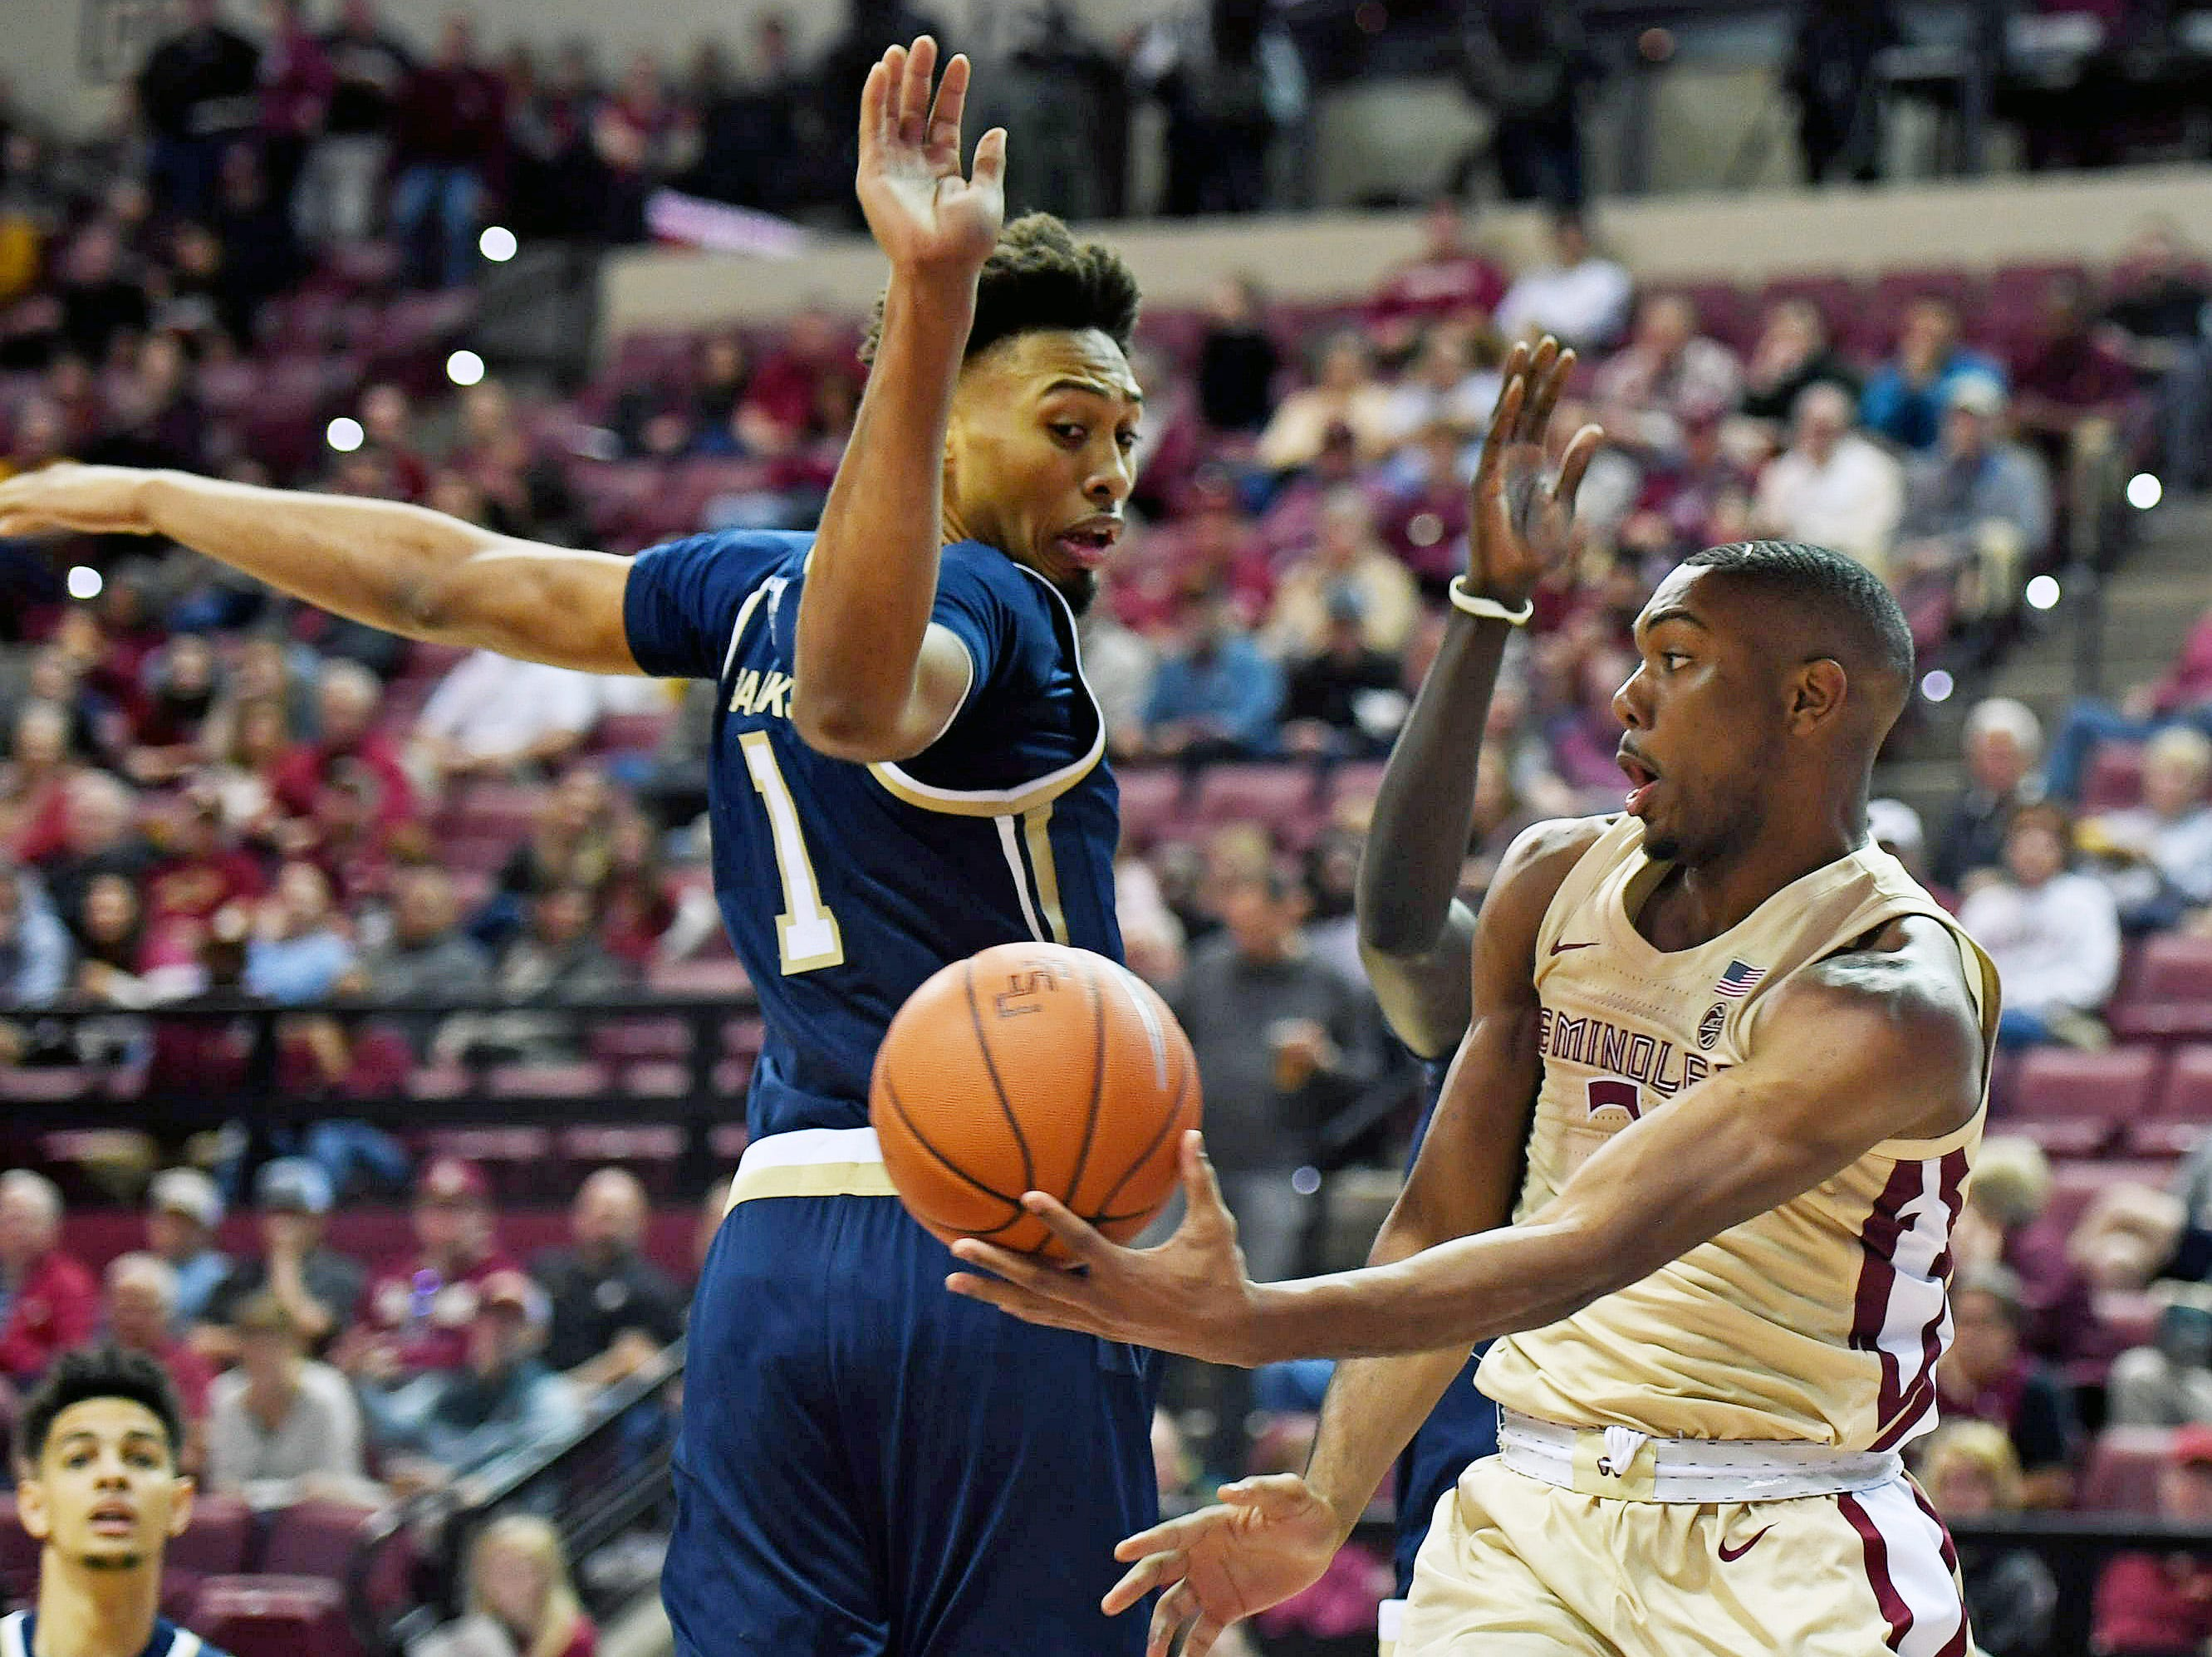 Feb 2, 2019; Tallahassee, FL, USA; Florida State Seminoles guard Trent Forrest (3) passes the ball around Georgia Tech Yellow Jackets forward James Banks III (1) during the first half at Donald L. Tucker Center. Mandatory Credit: Melina Myers-USA TODAY Sports